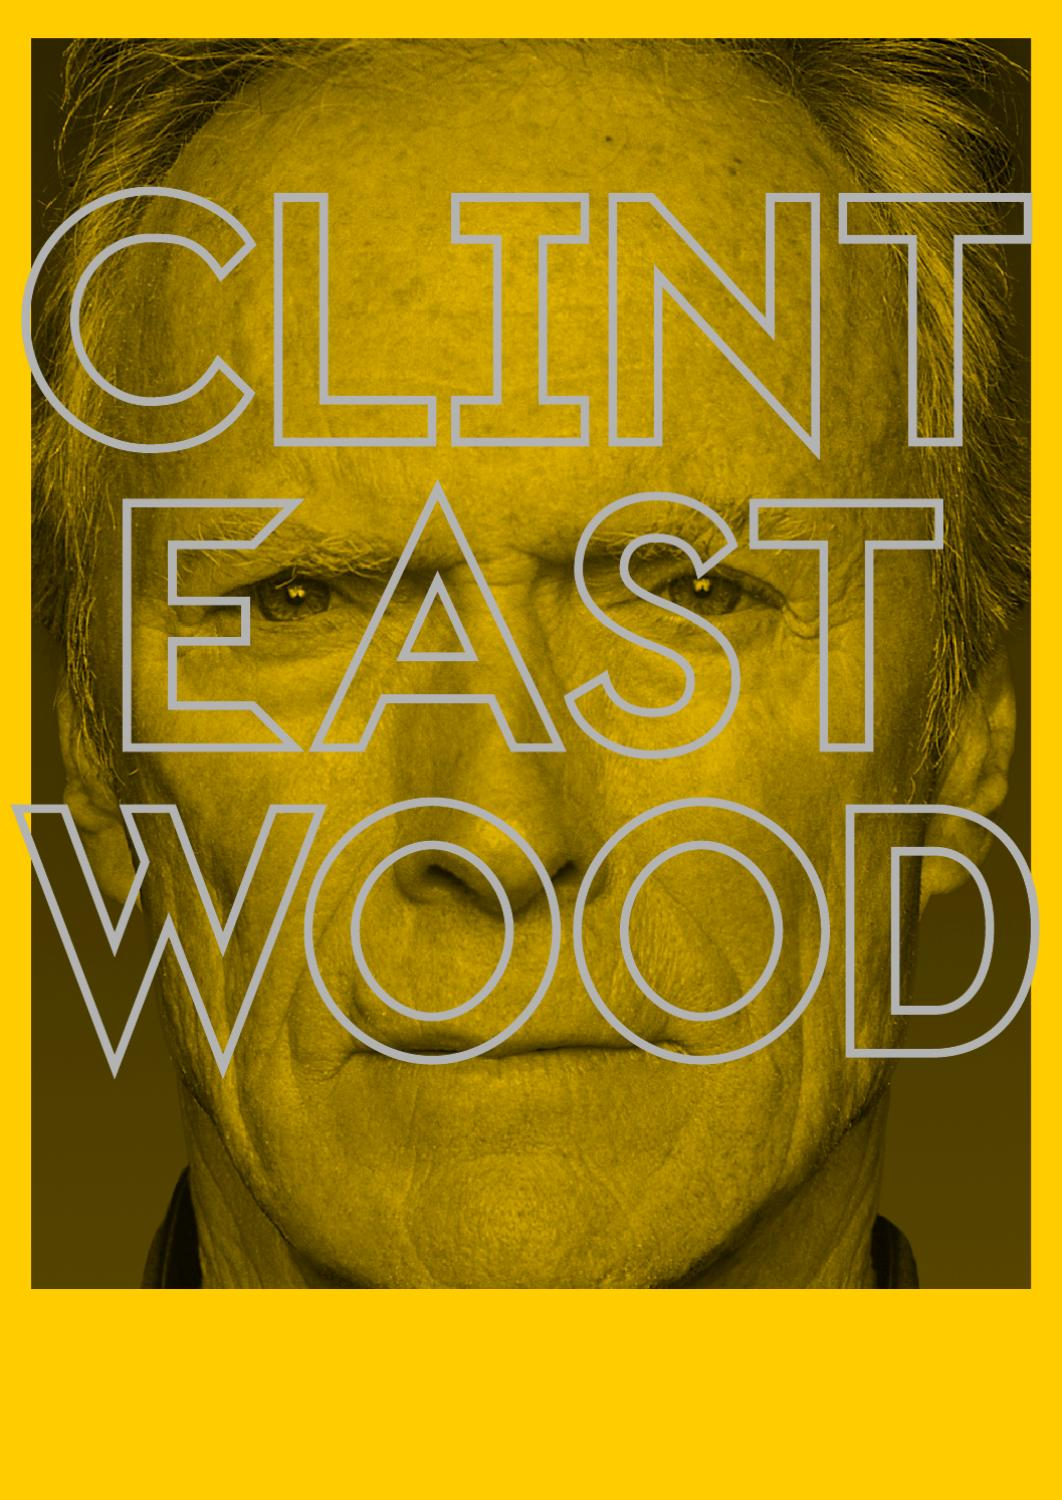 8912039974201 Clint Eastwood - Retrospectiva no IMS by Instituto Moreira Salles - issuu